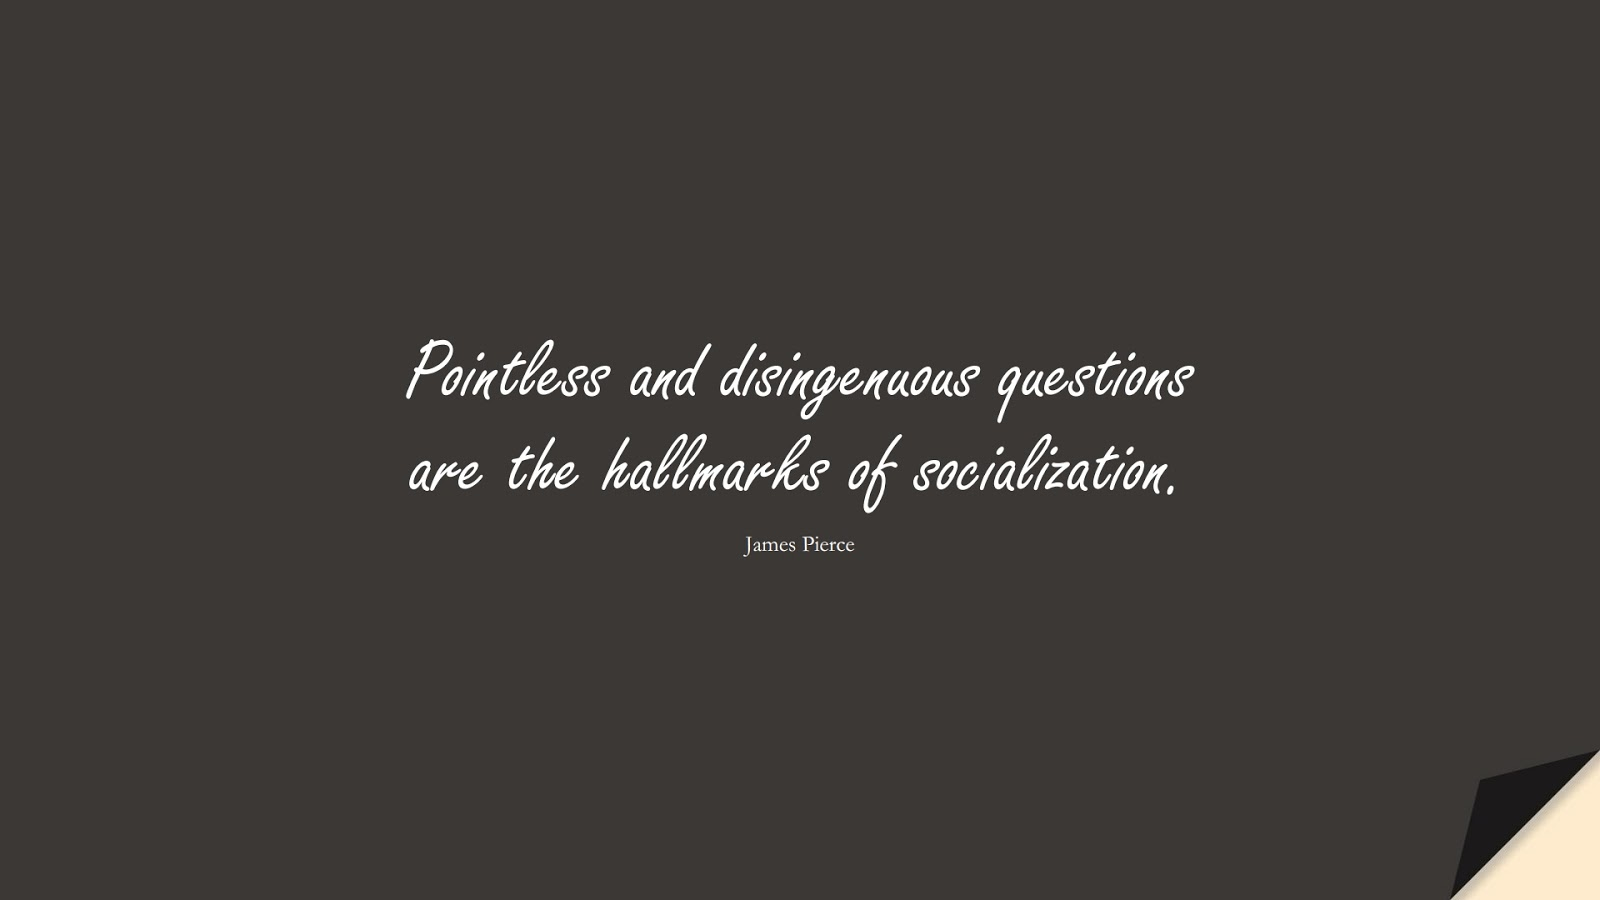 Pointless and disingenuous questions are the hallmarks of socialization. (James Pierce);  #RelationshipQuotes